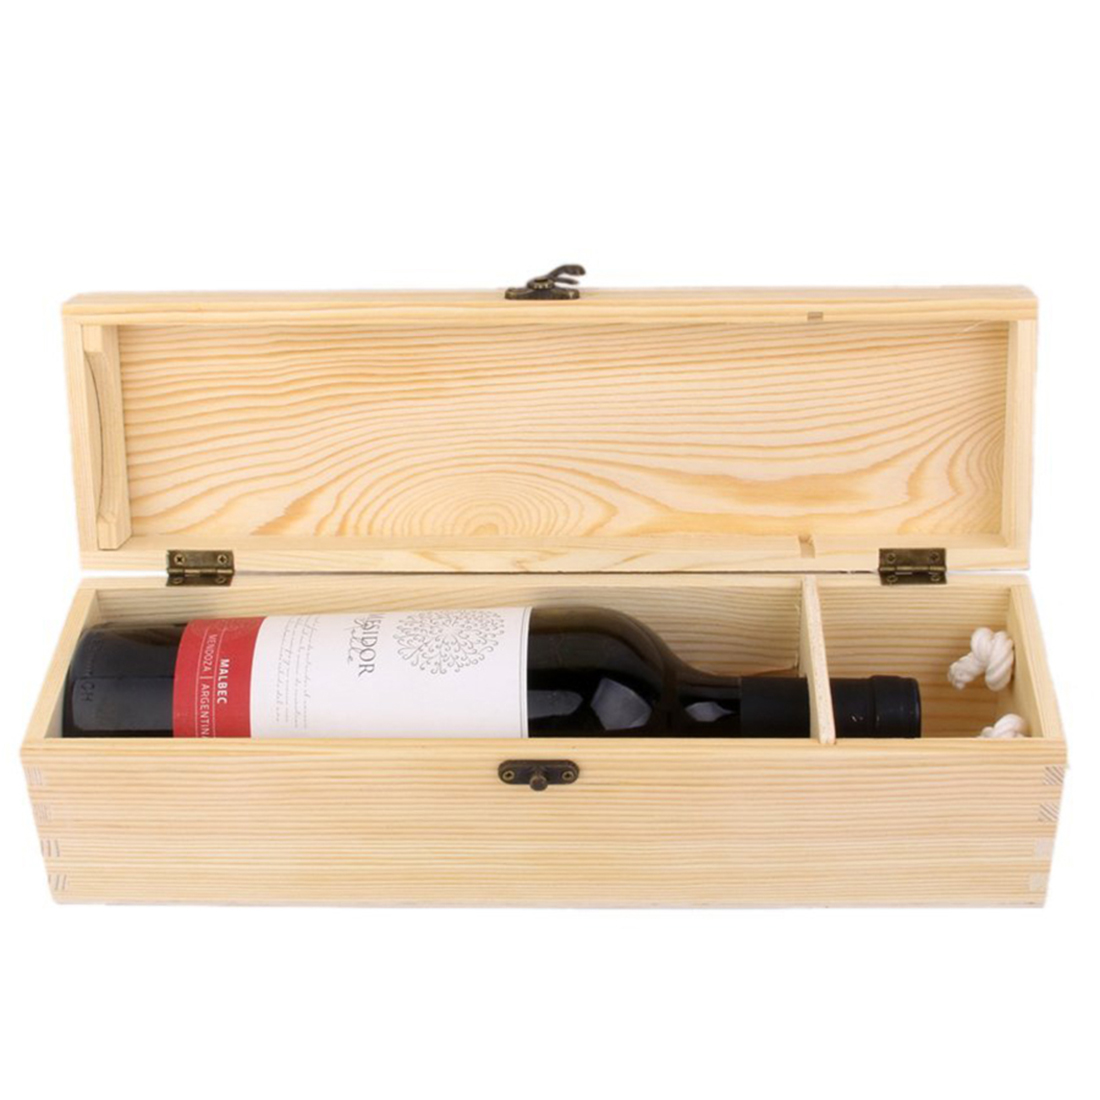 Wood Wine Box Wine Decor Best Gift H5U6 190268852289 | eBay